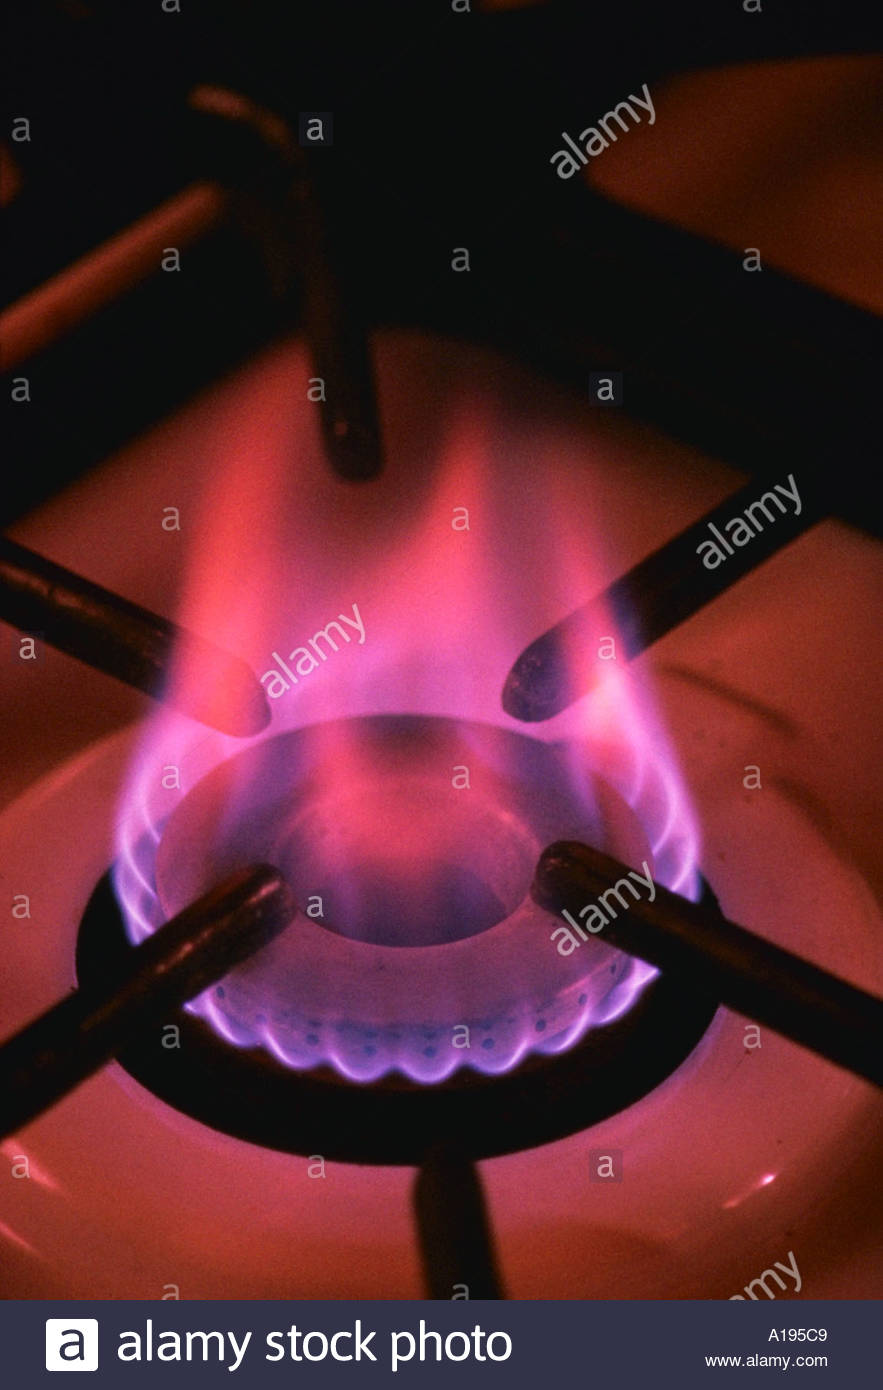 Kitchen stove burner and natural gas flame Stock Photo: 103881 - Alamy